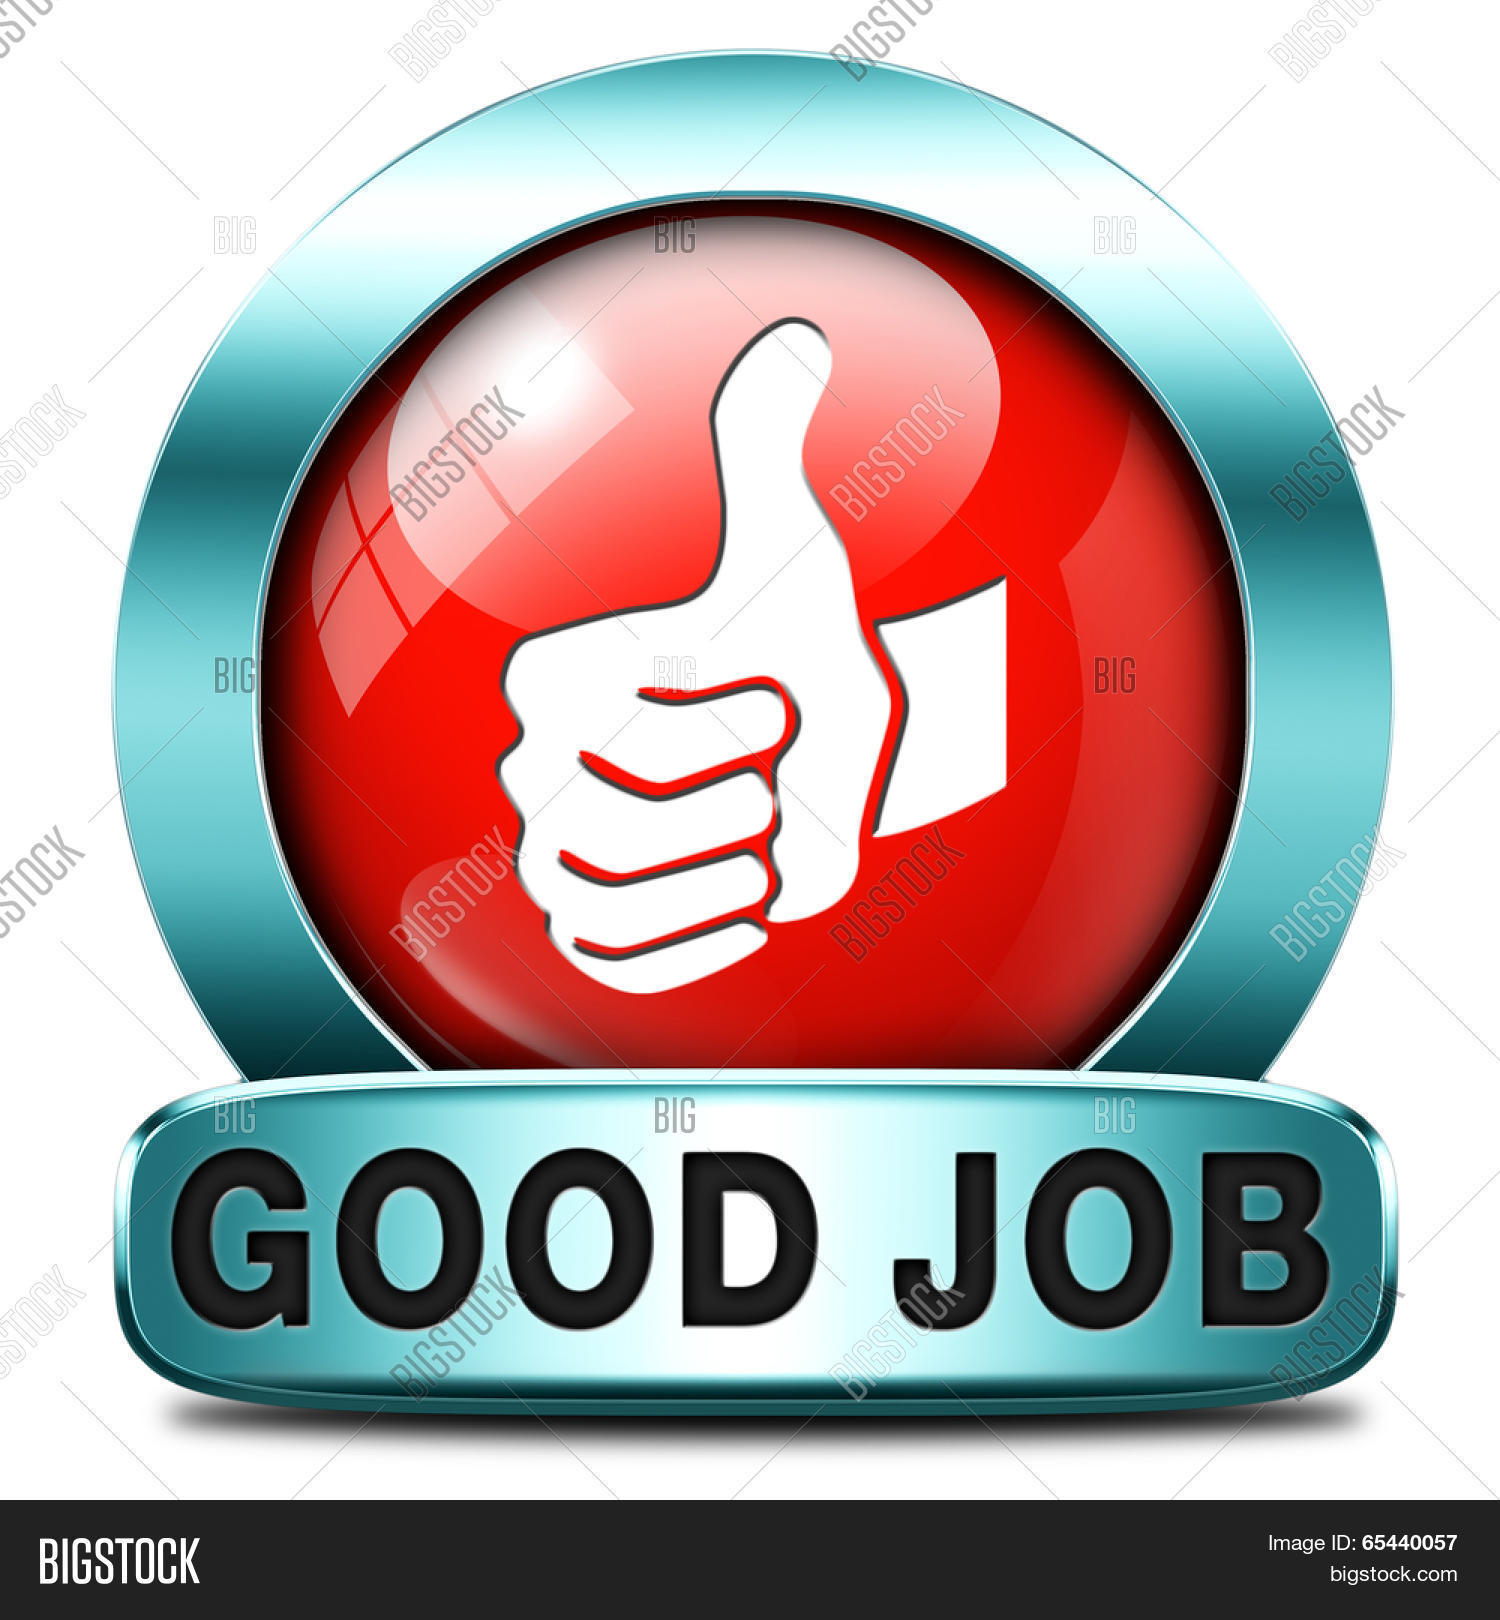 good job work well image photo free trial bigstock